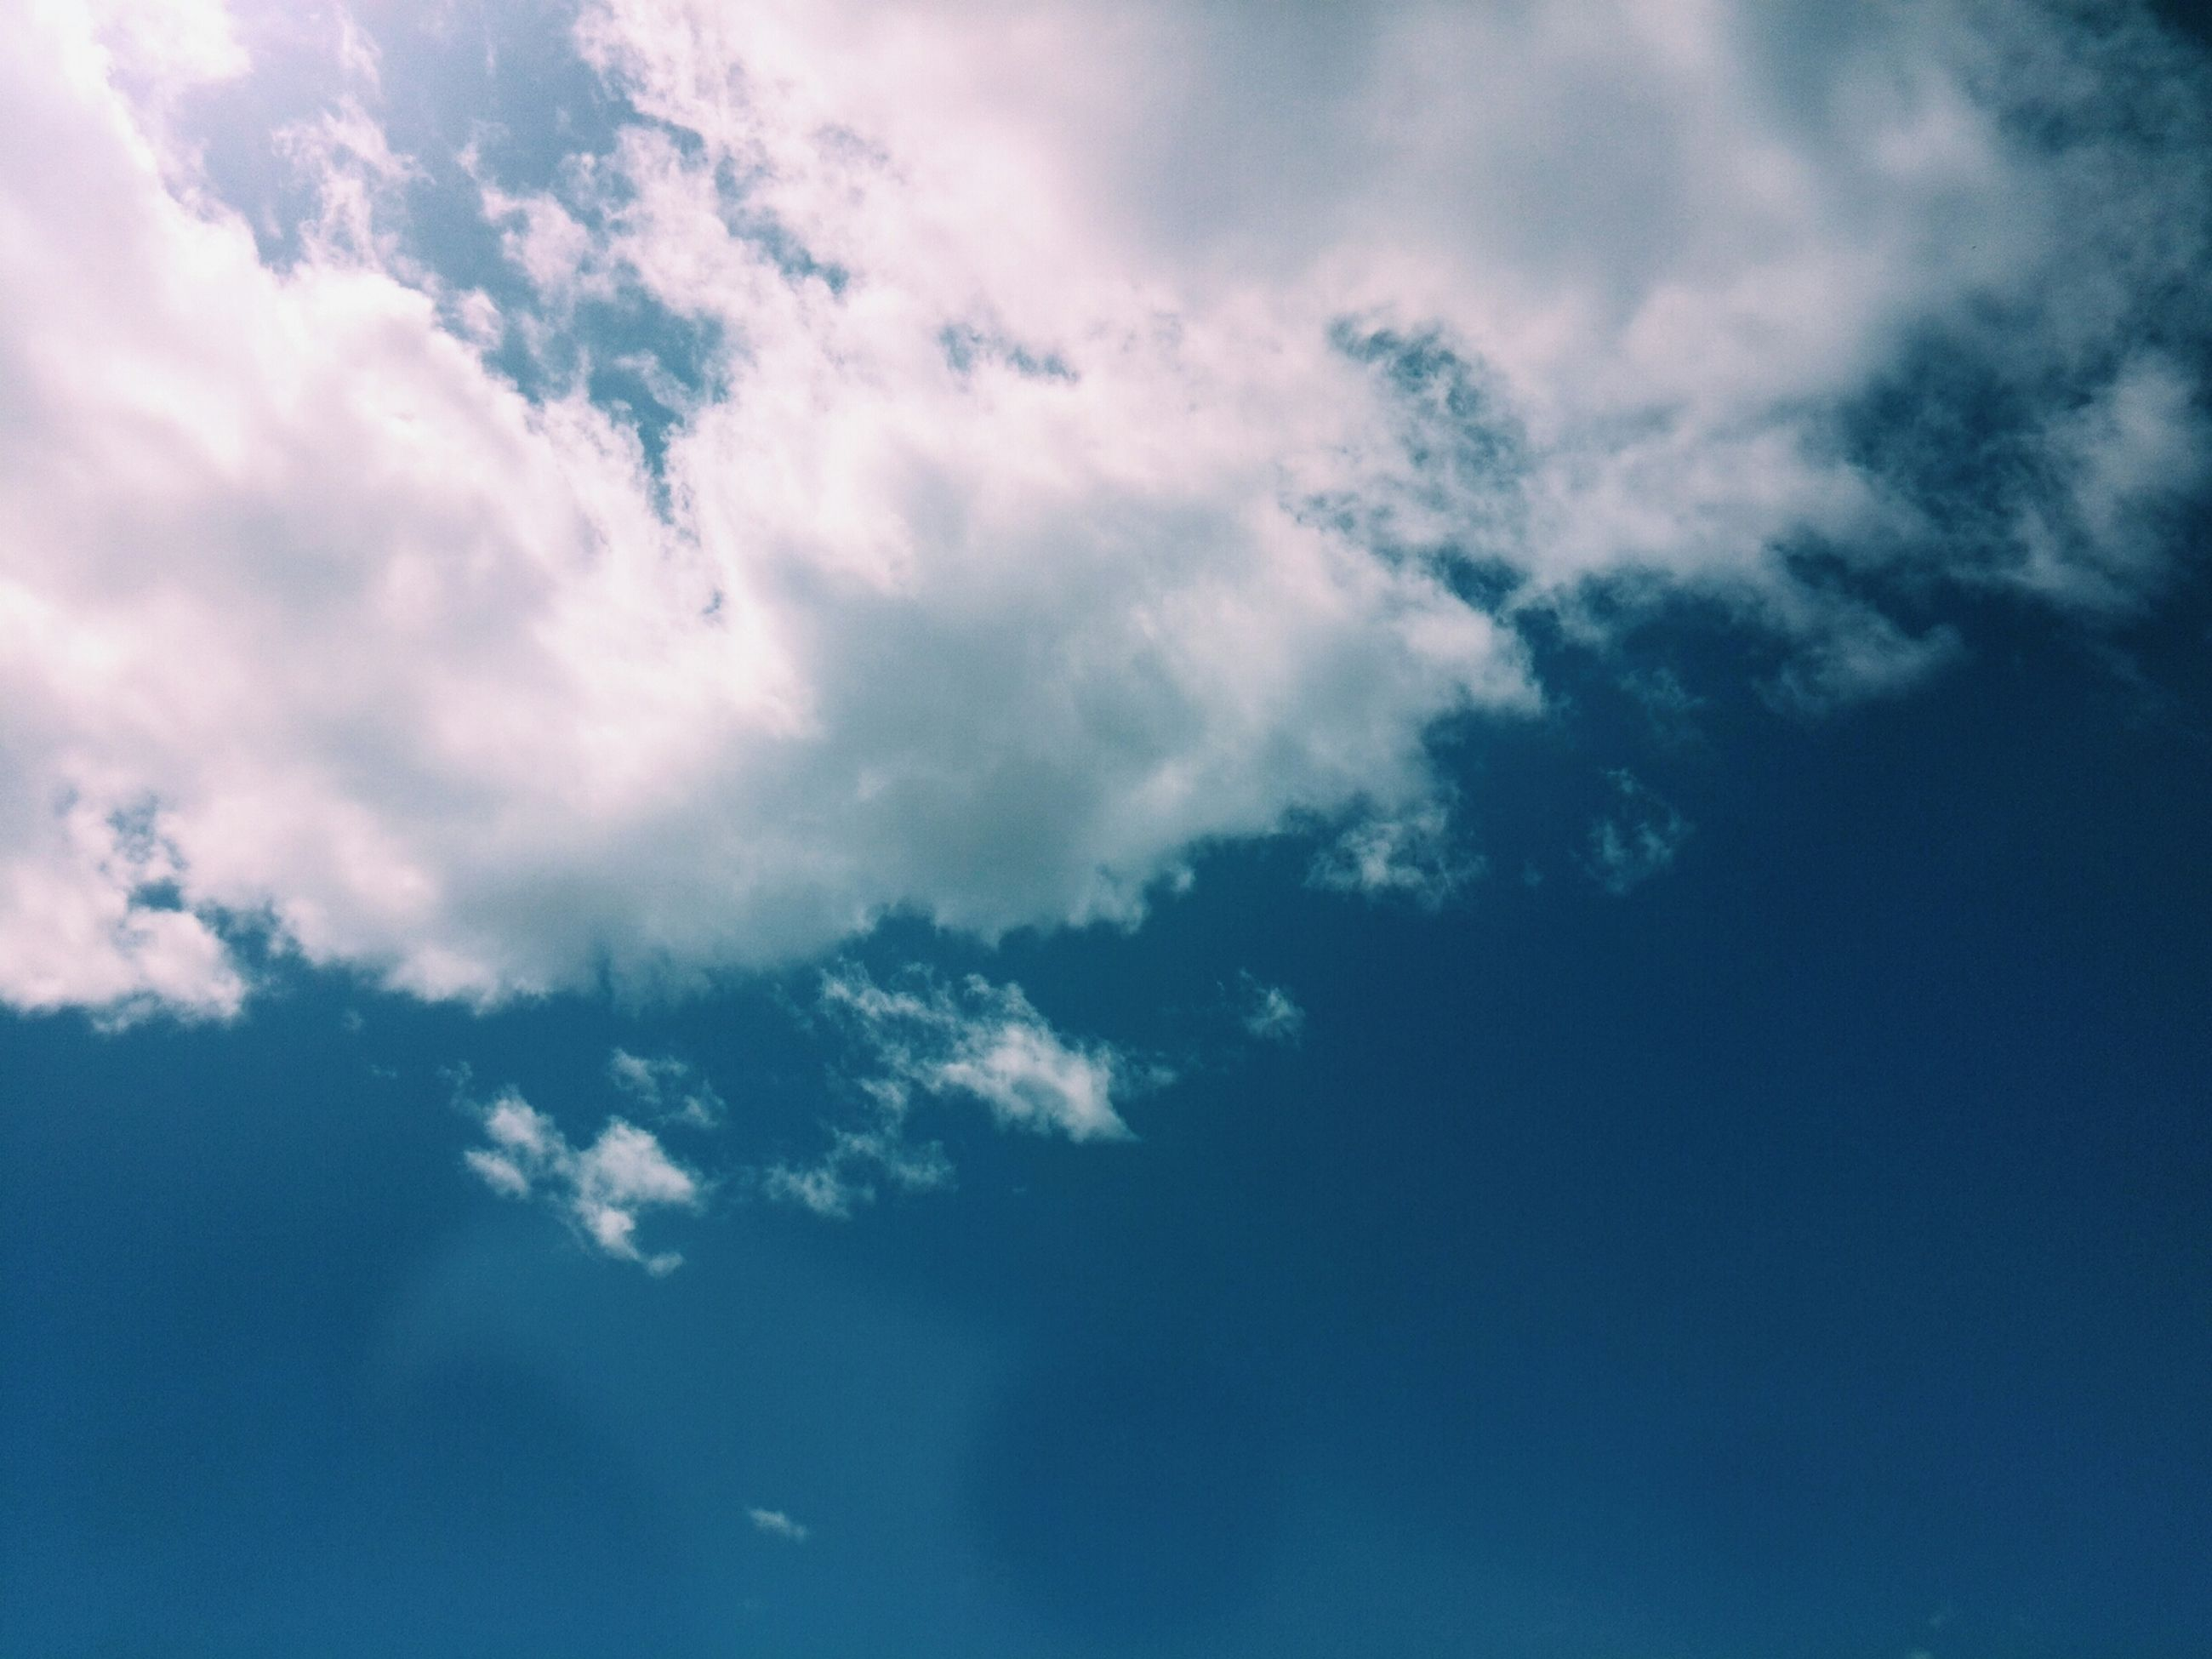 sky, cloud - sky, beauty in nature, low angle view, tranquility, blue, scenics, sky only, nature, tranquil scene, cloudy, backgrounds, cloud, cloudscape, idyllic, full frame, day, outdoors, no people, majestic